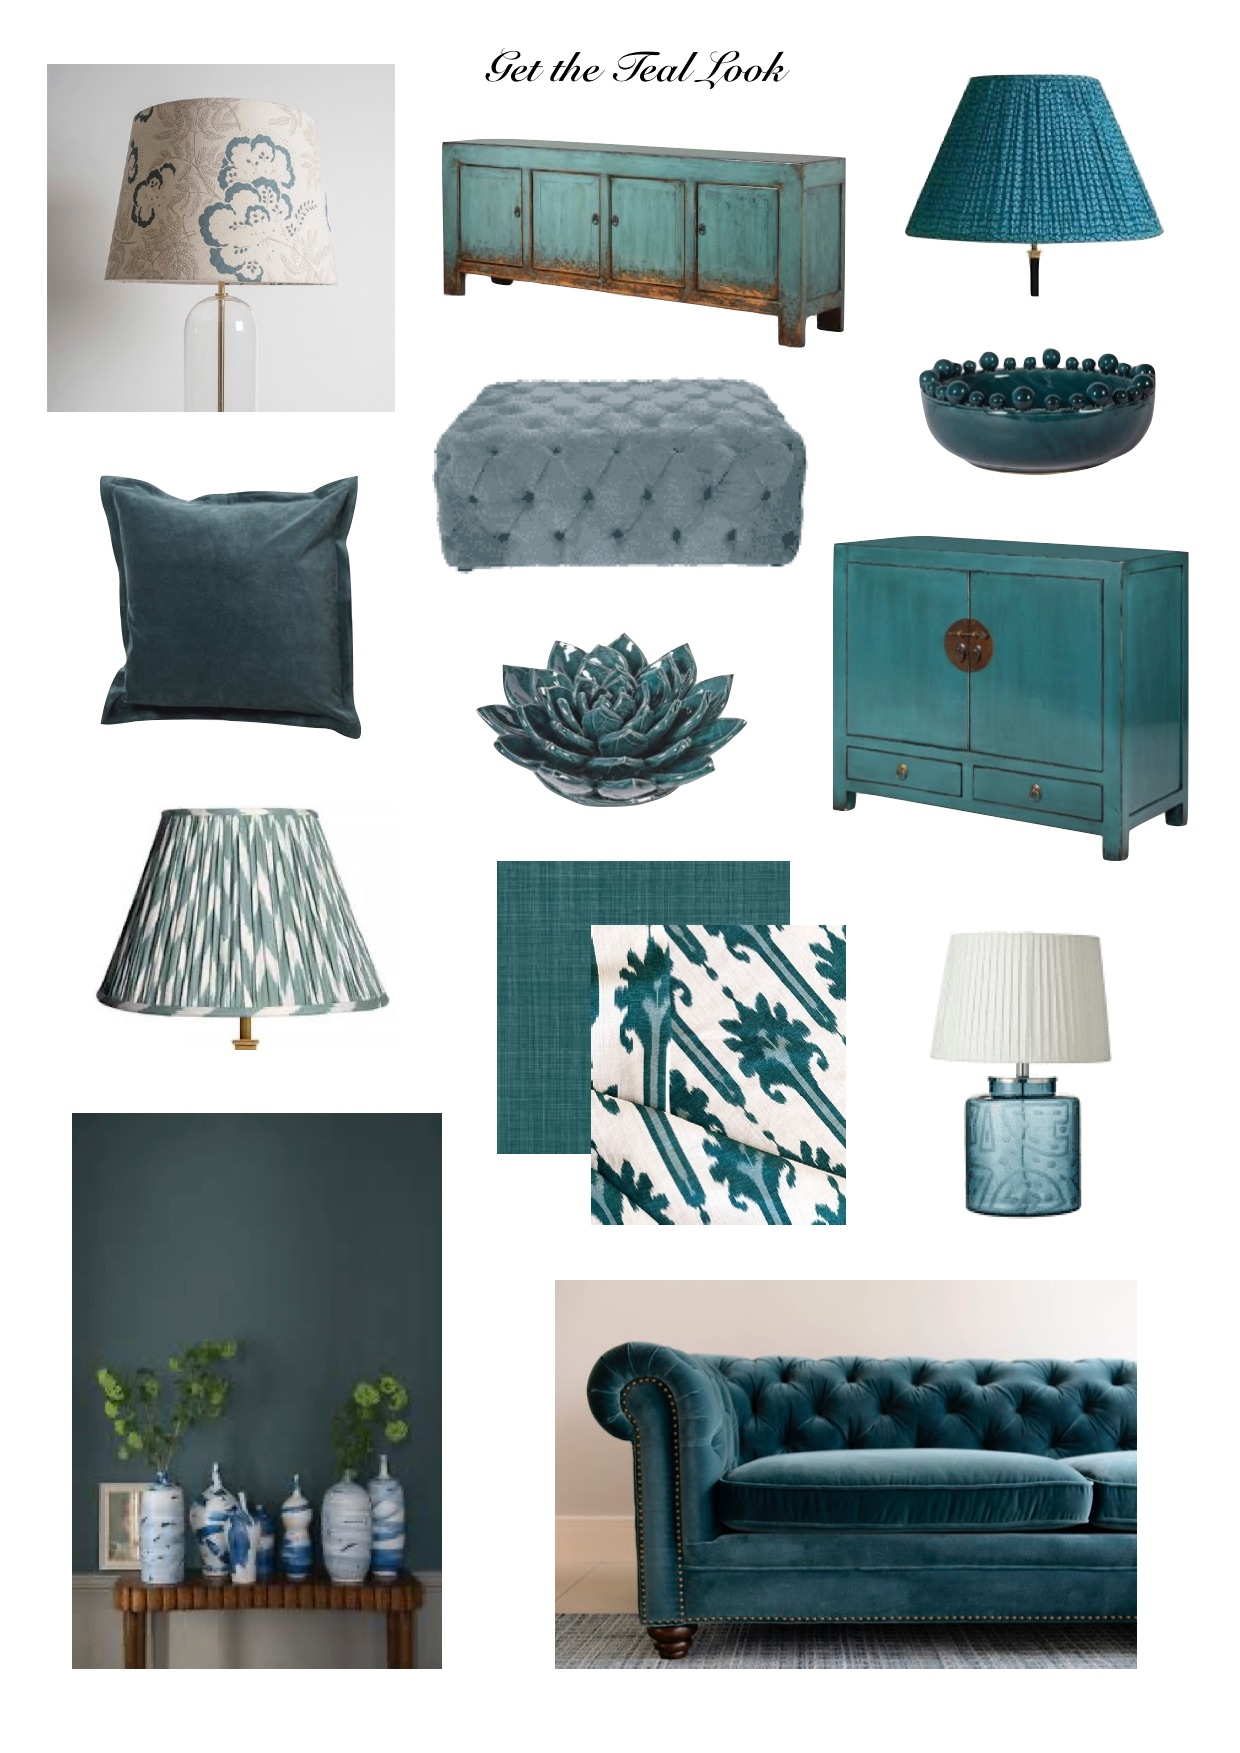 Get the teal look,dramatic interior colour,add drama to an interior